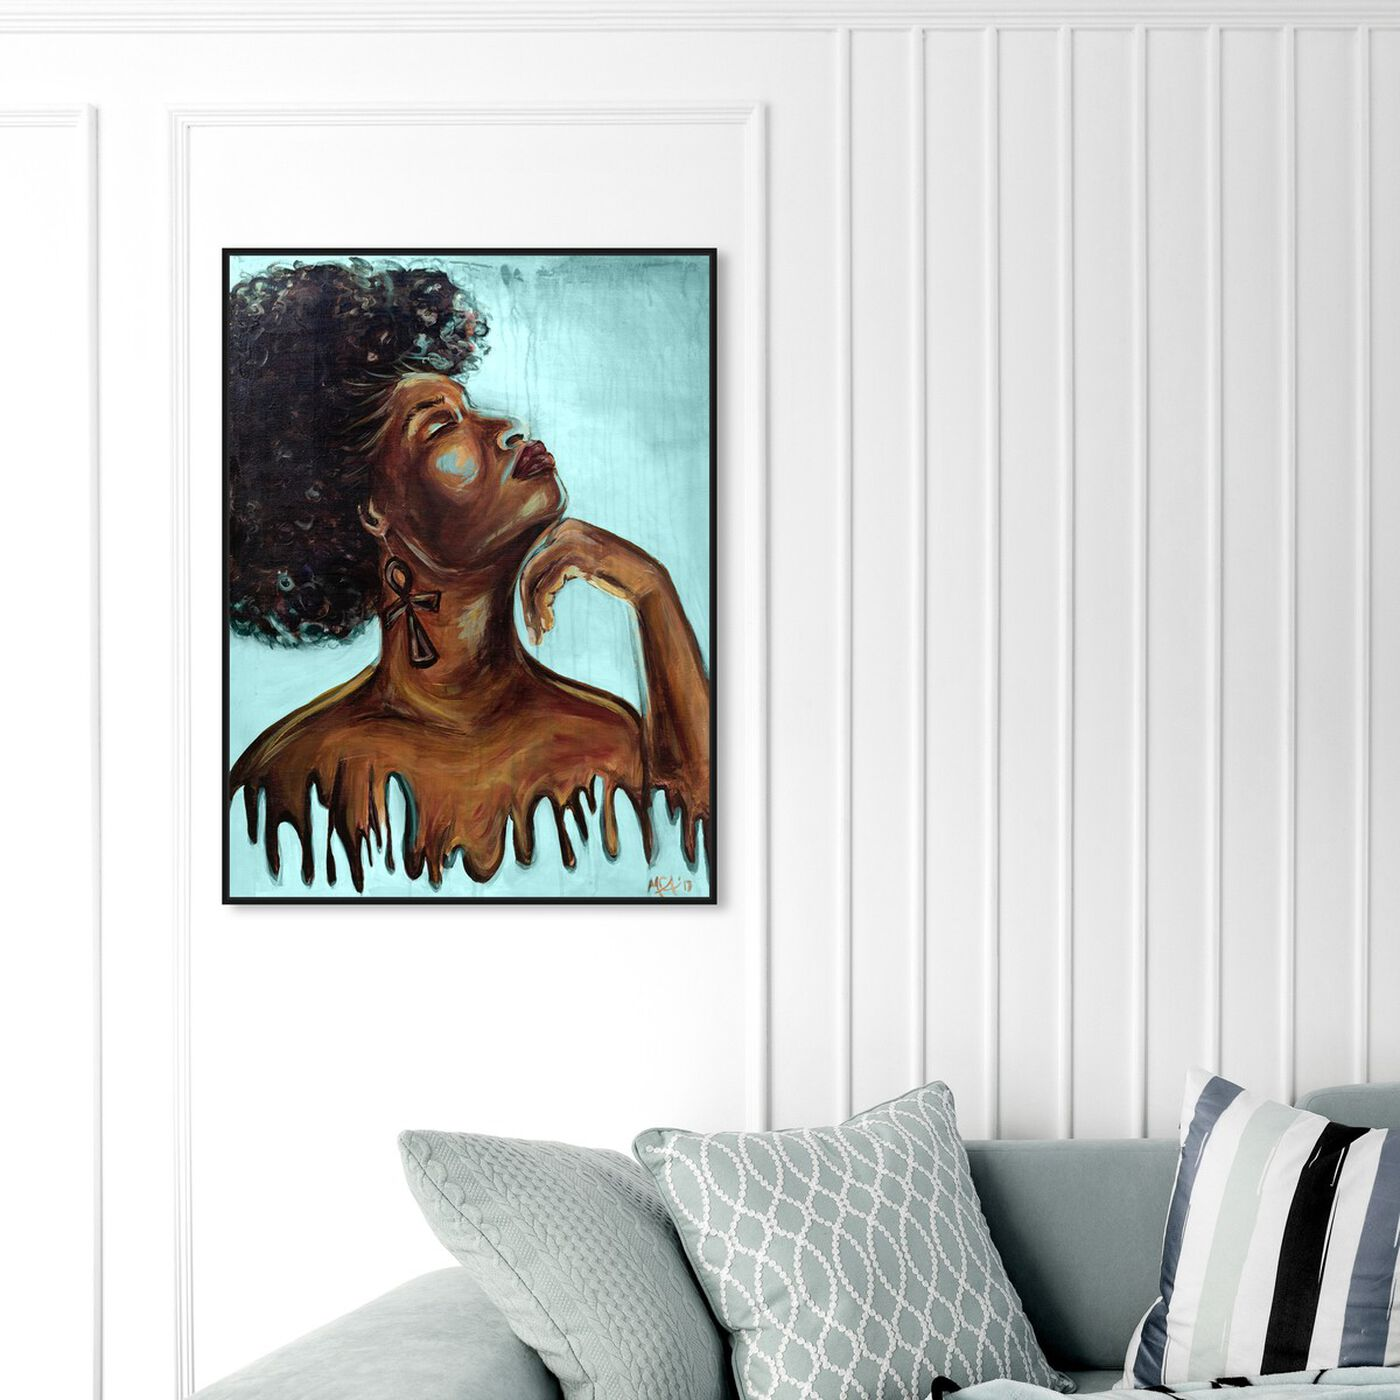 Hanging view of Marissa Anderson - Dripping Melanin Blue featuring fashion and glam and portraits art.